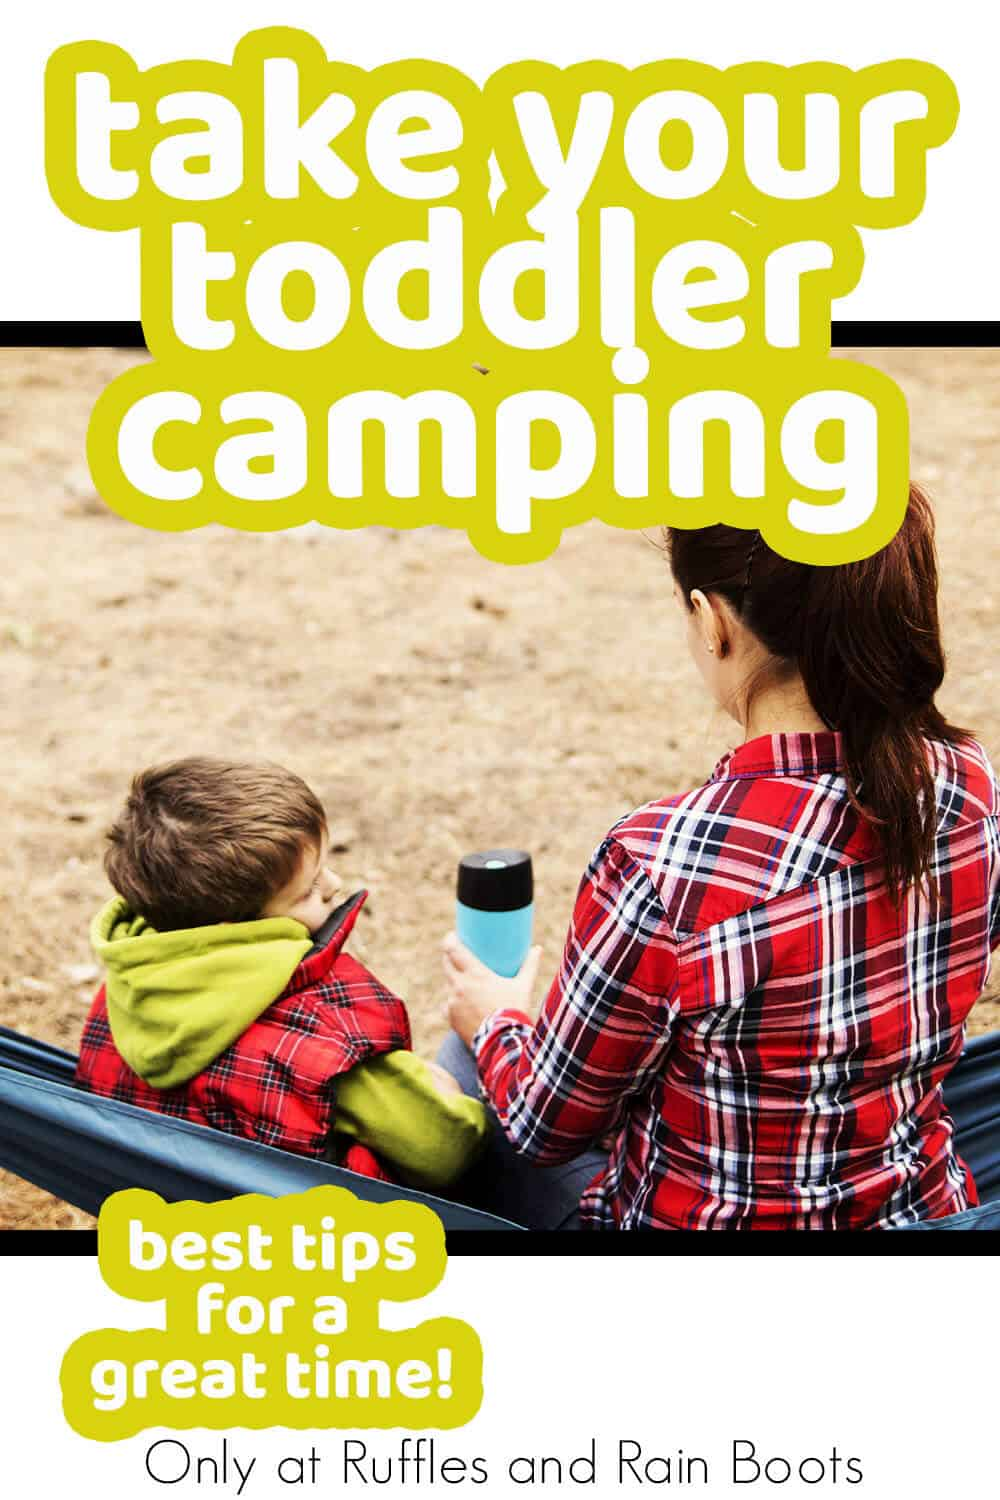 tricks to take small children camping with text which reads take your toddler camping best tips for a great time